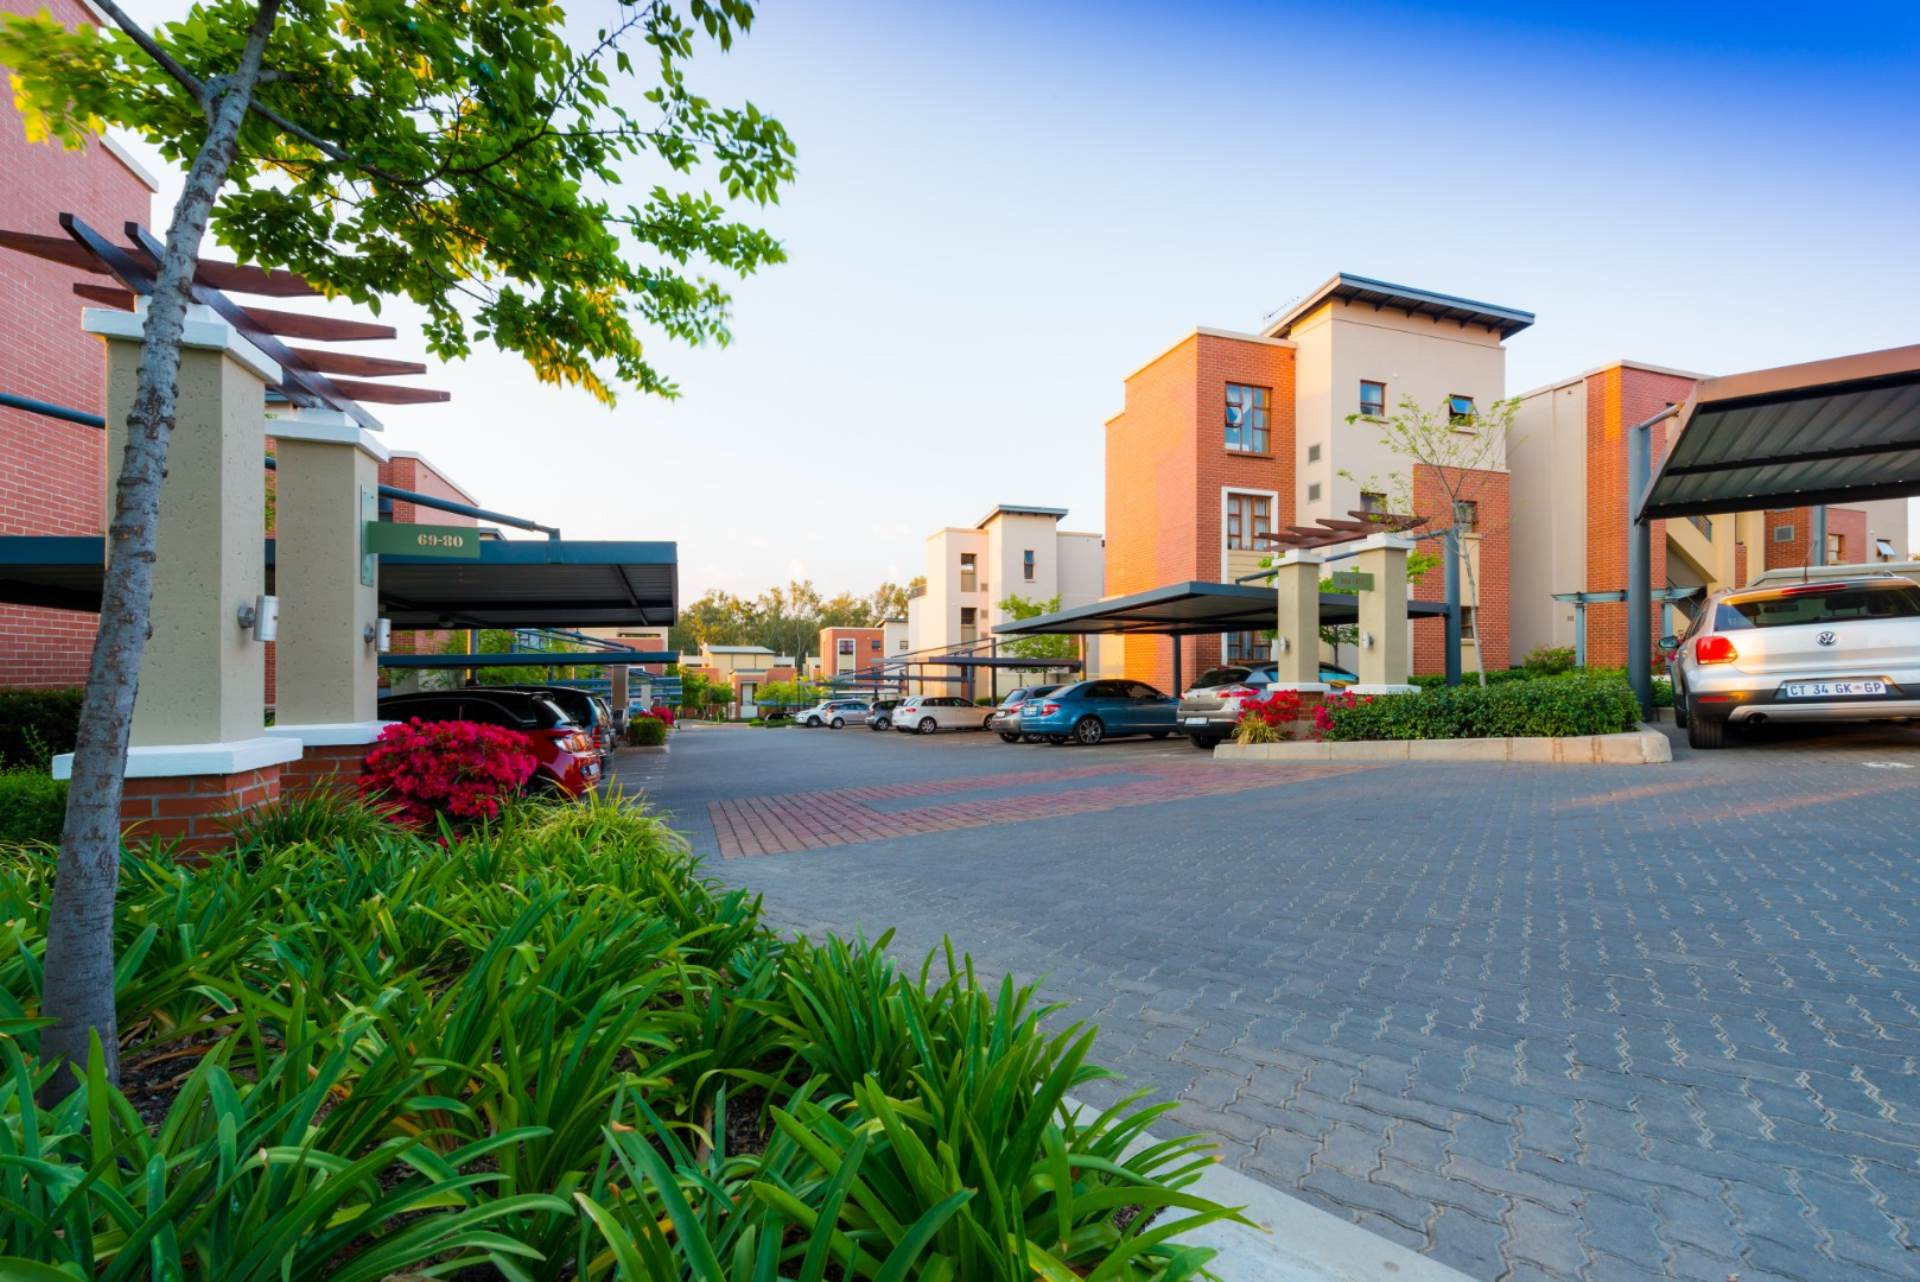 2 BedroomTownhouse For Sale In Douglasdale